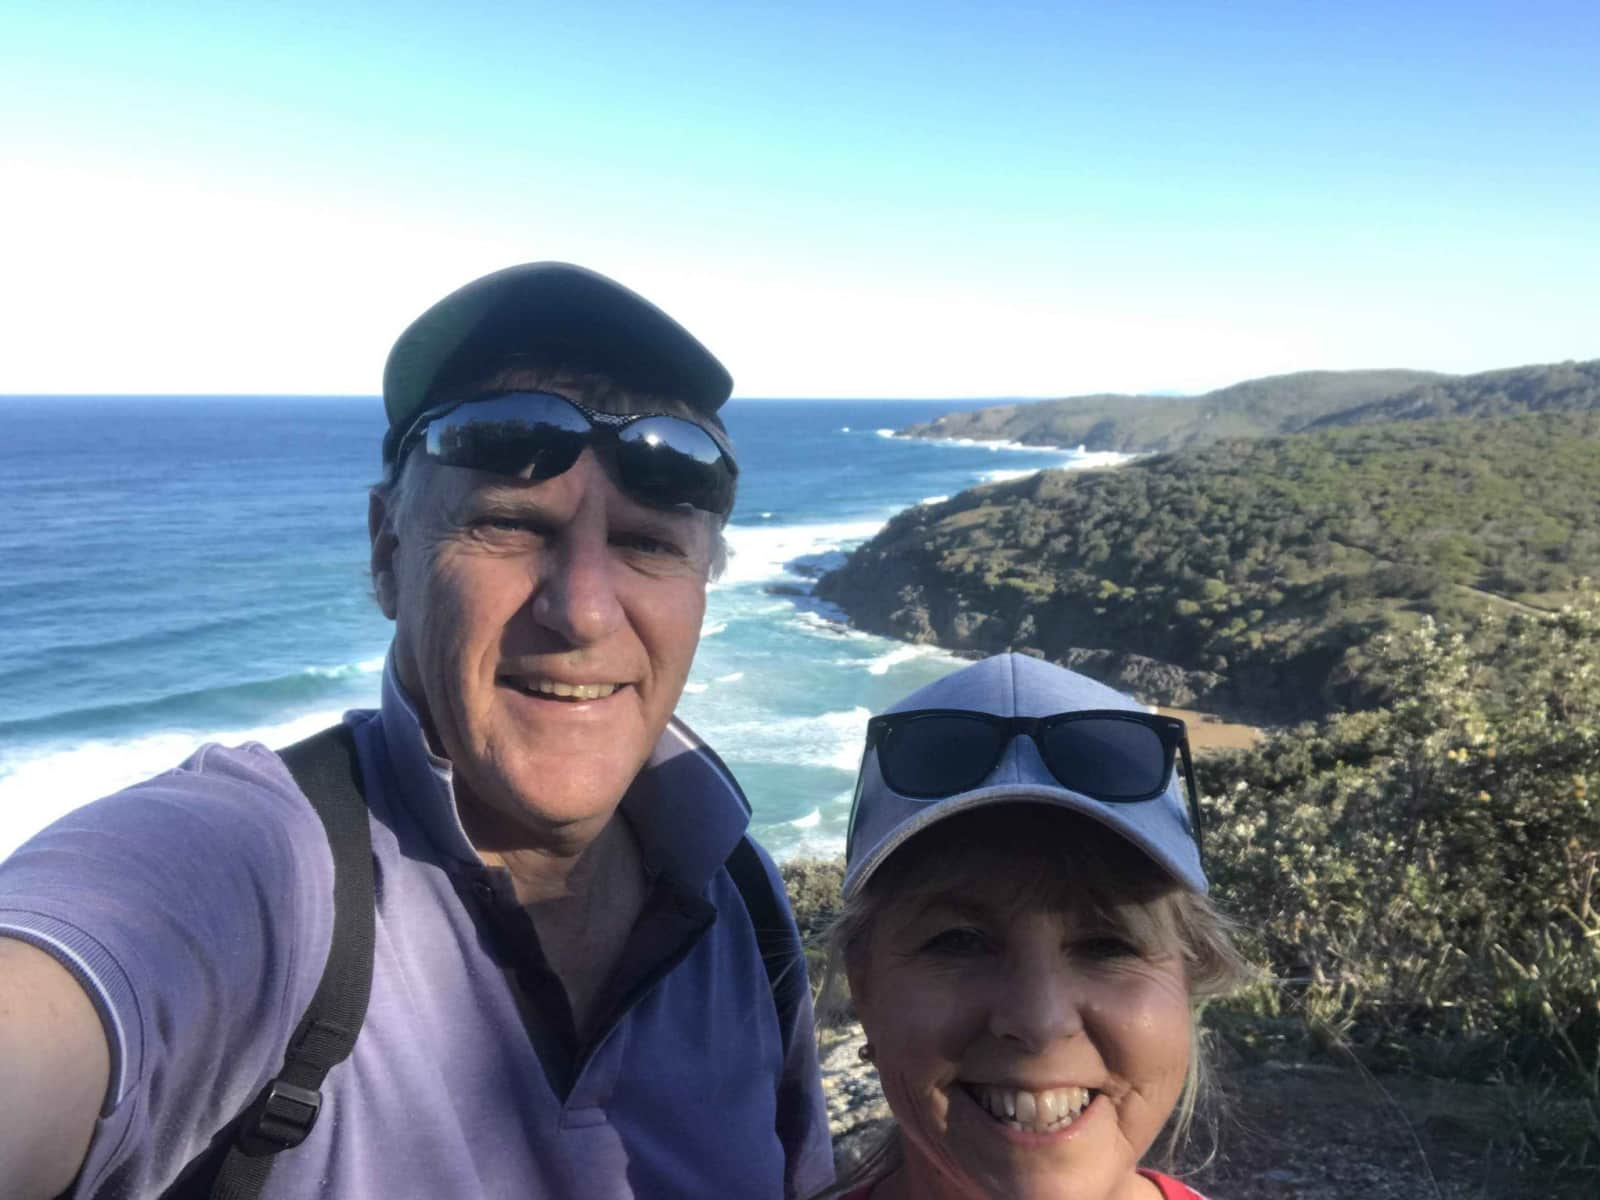 Andy & Lesley from Port Macquarie, New South Wales, Australia